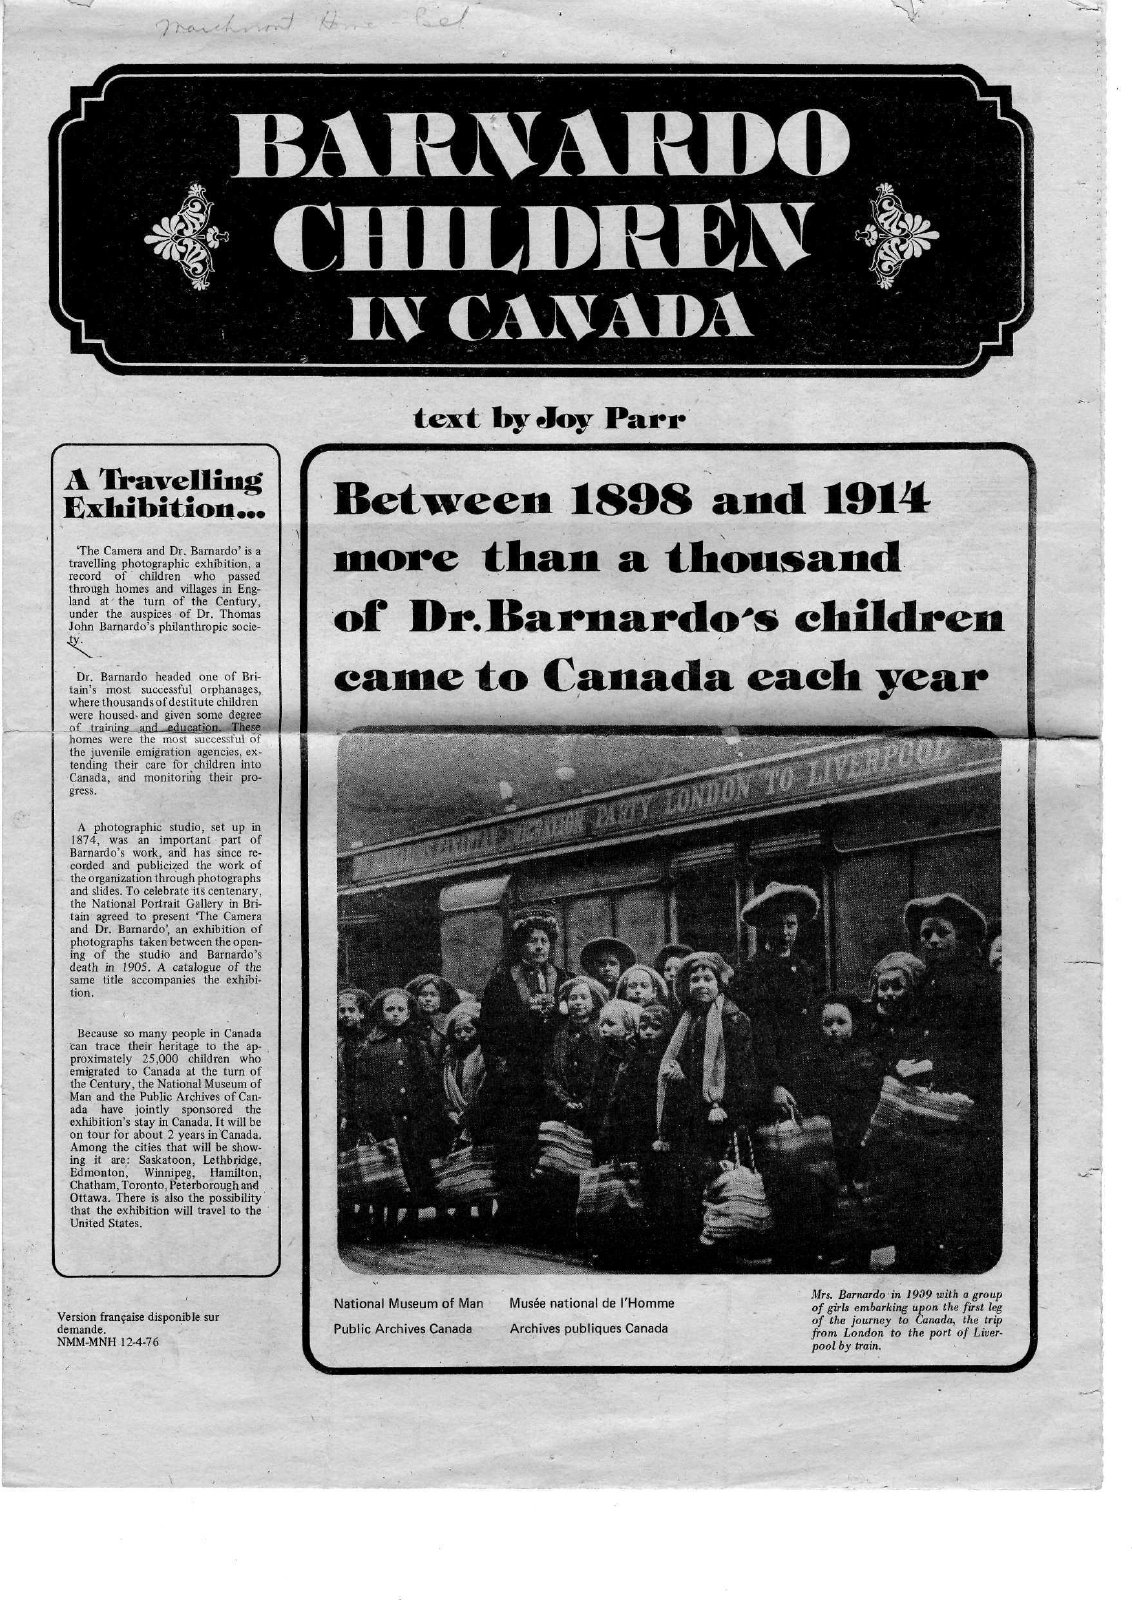 Even in the 1970s people were still talking about what a successful effort the Child Migrant program was. <br>Courtesy the Belleville Public Library.